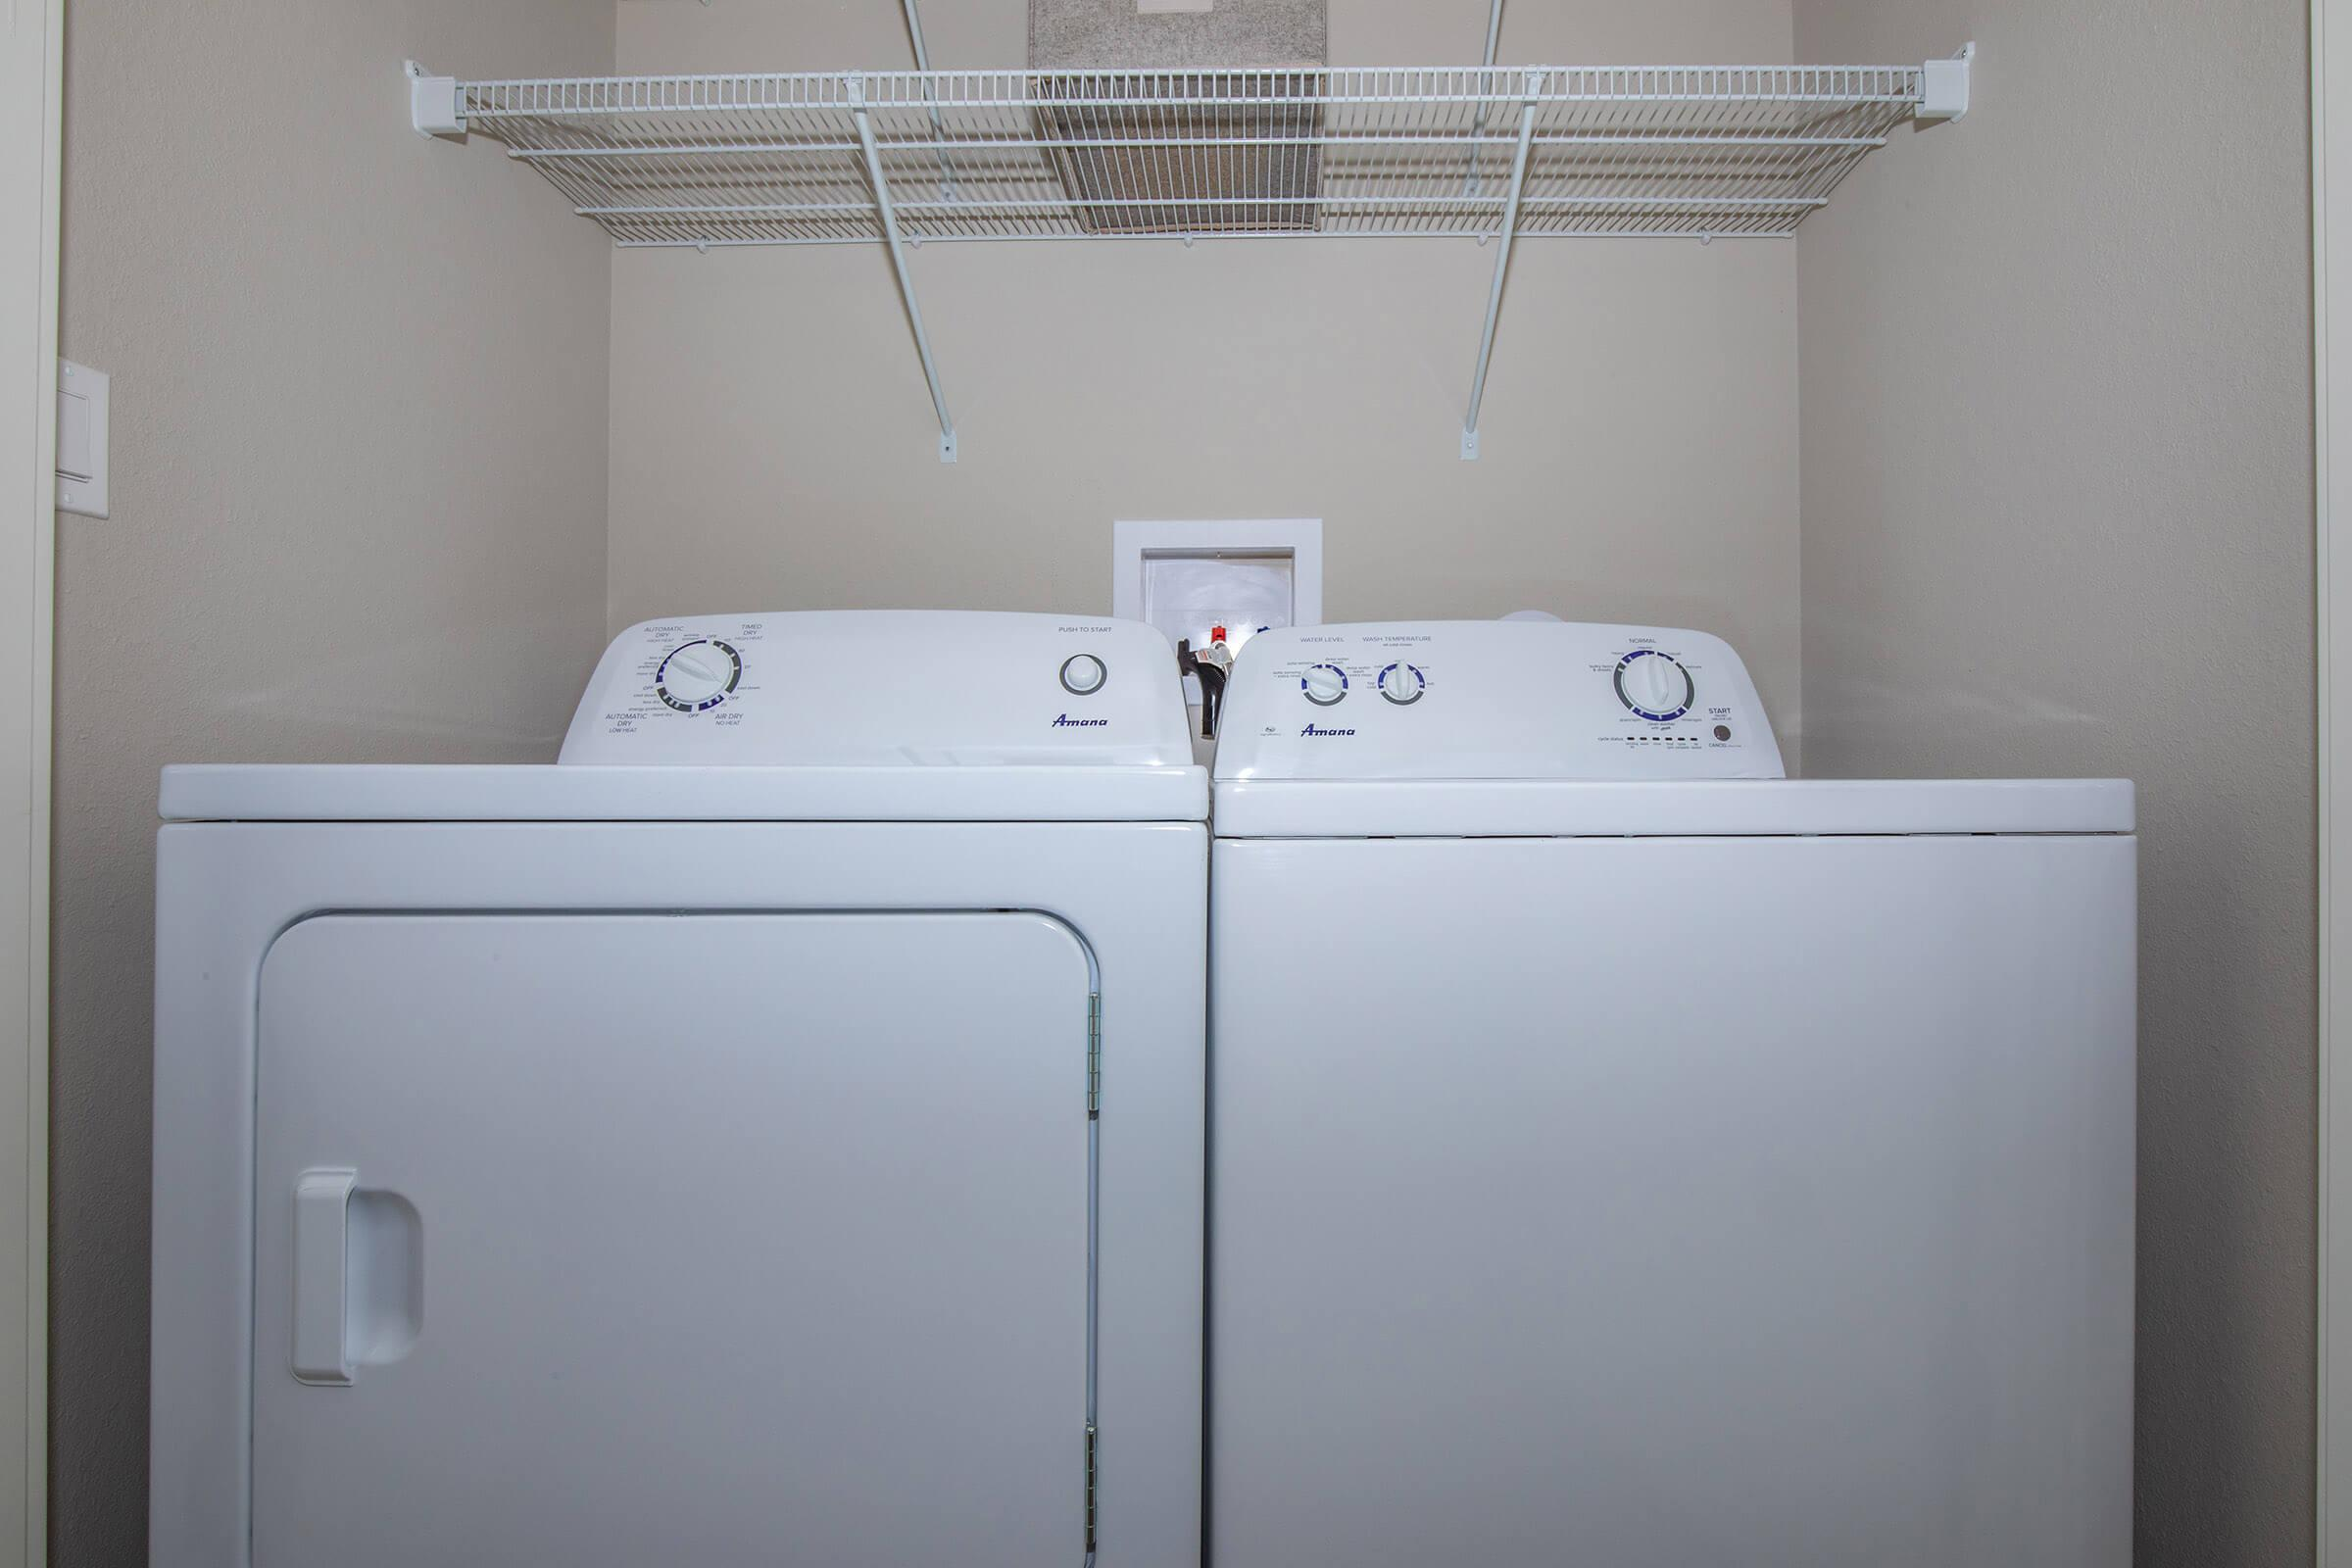 FULL-SIZE WASHER AND DRYER INCLUDED